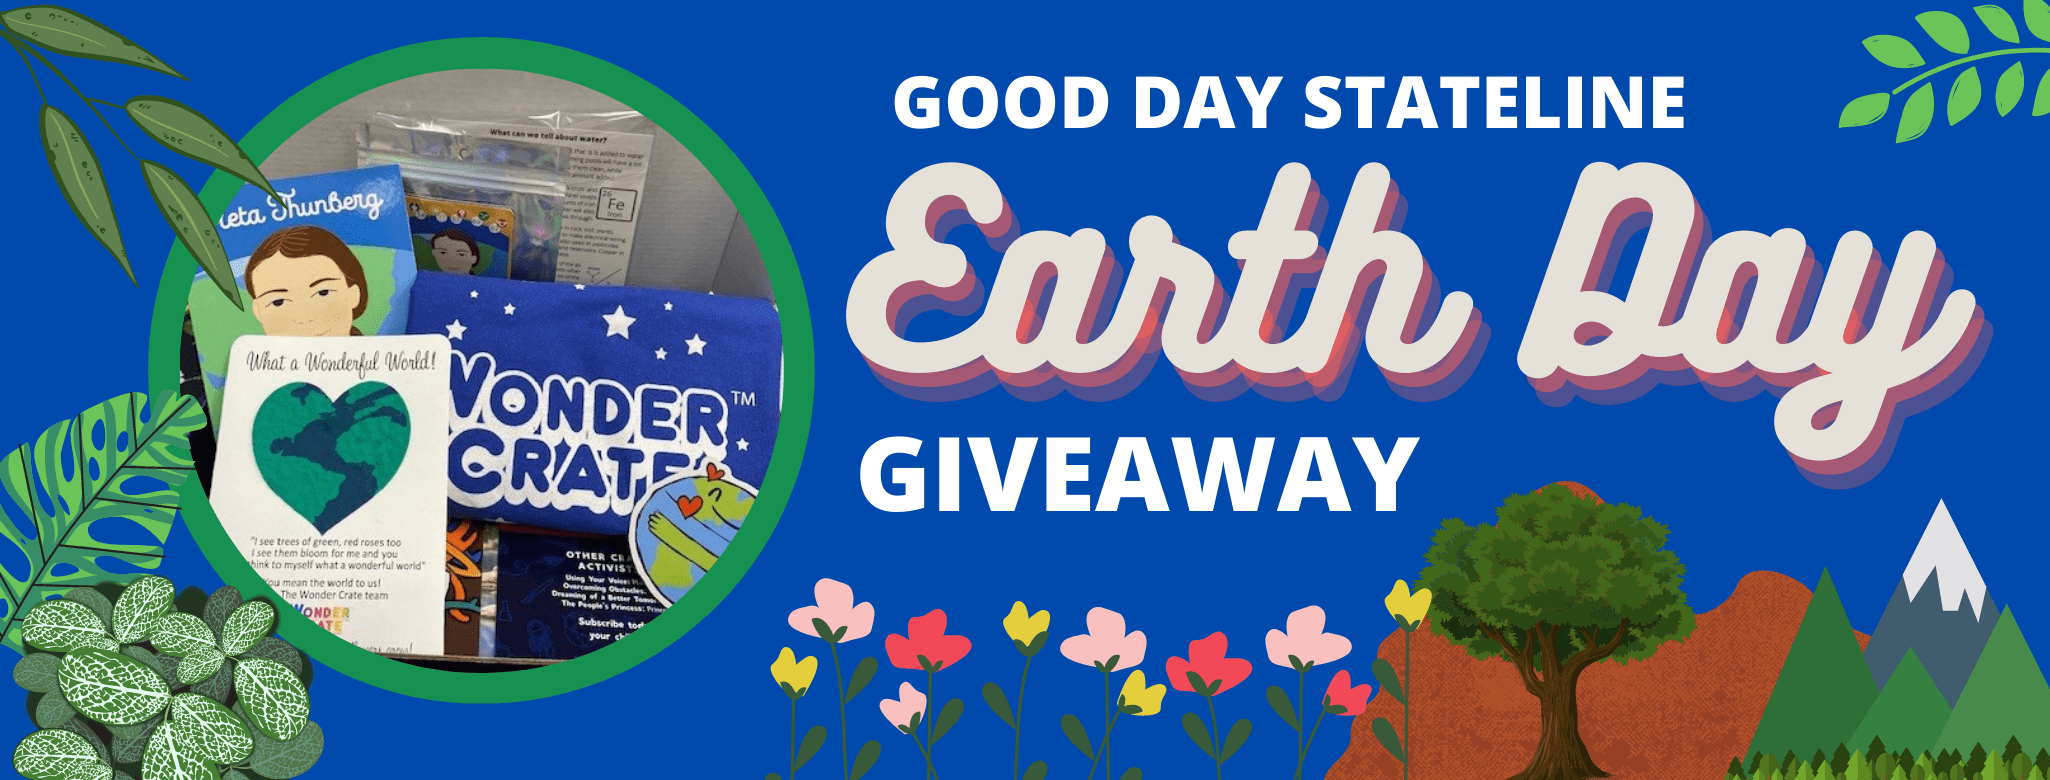 GDS Earth Day Giveaway